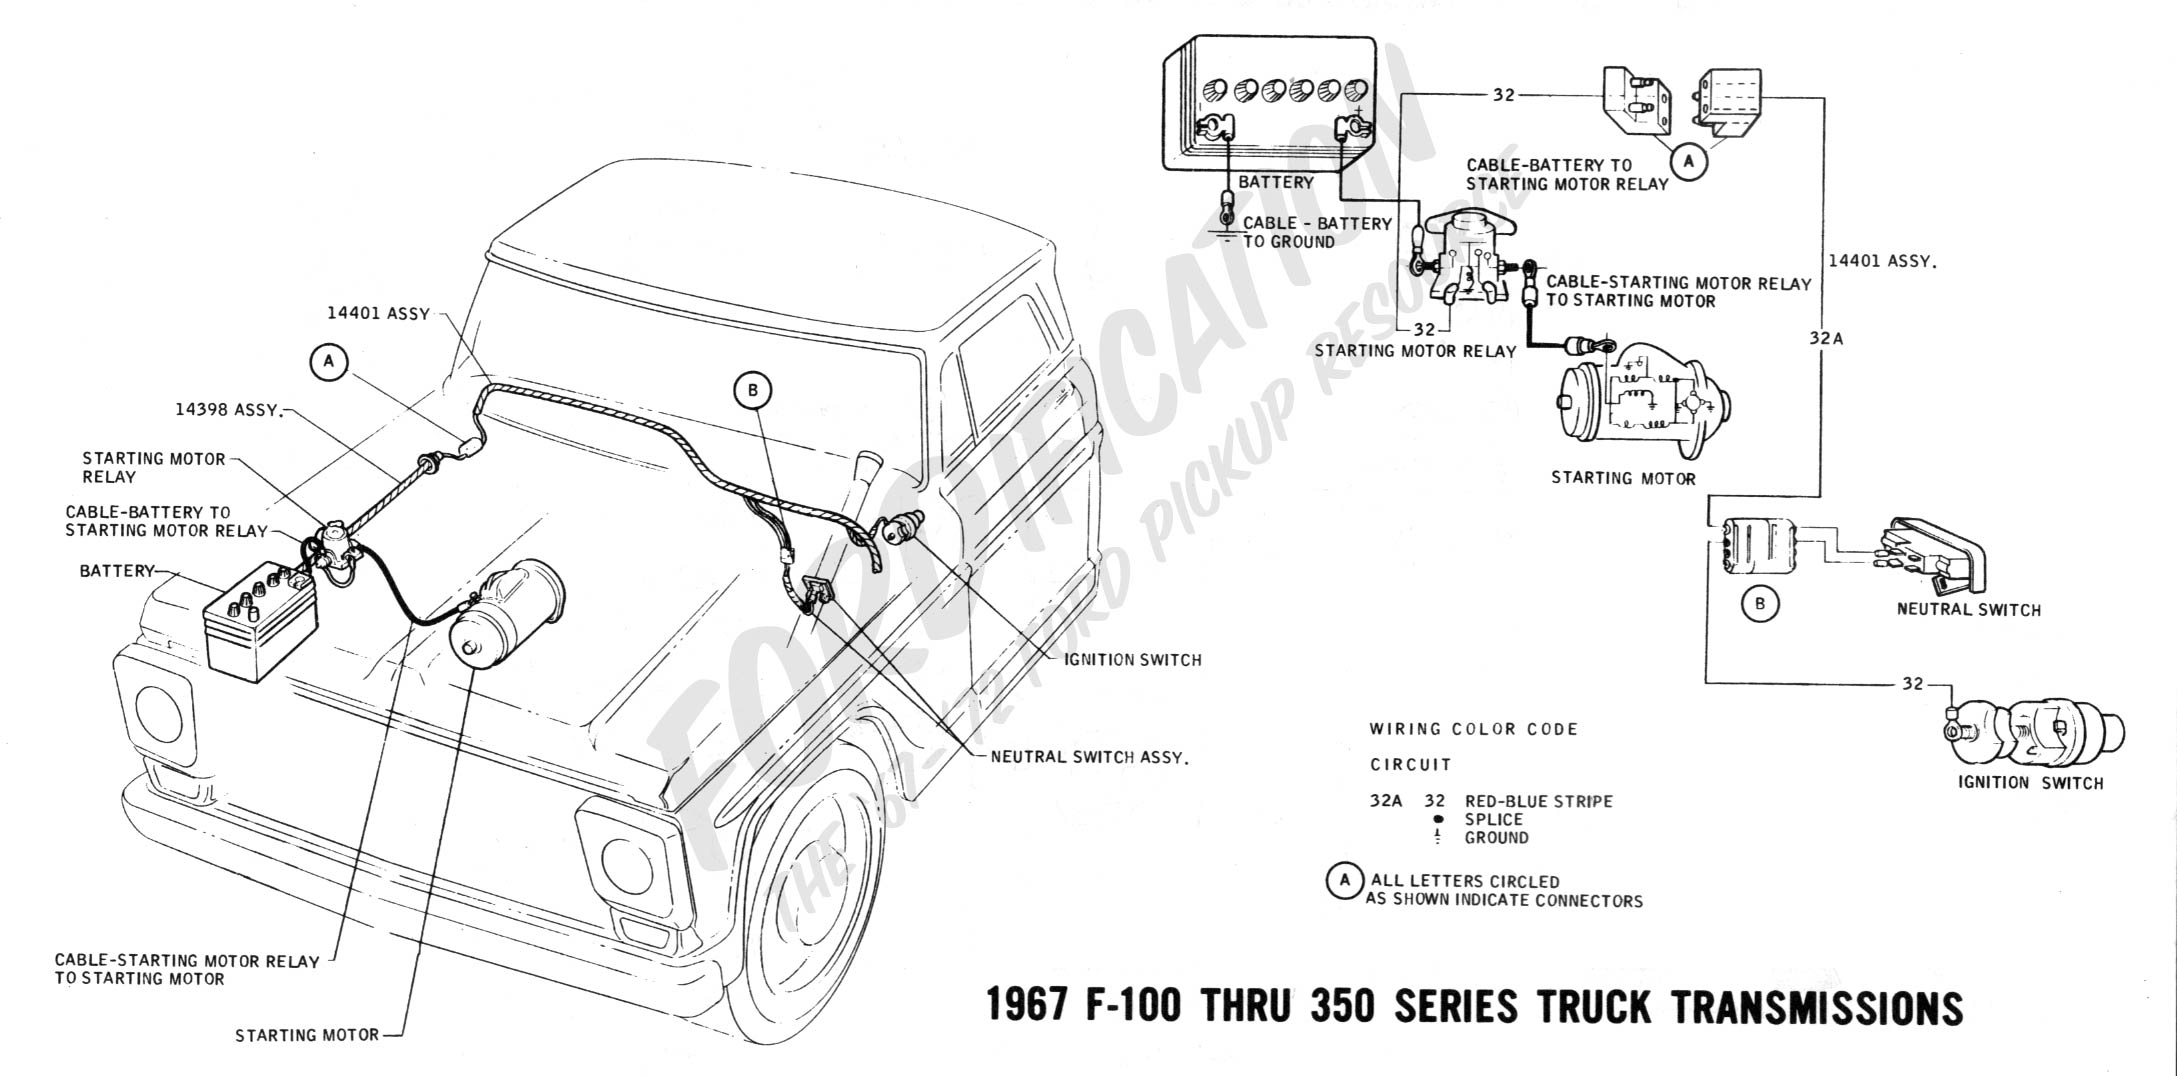 wiring 1967trucktranny 1978 ford starter solenoid wiring diagram circuit and schematics 1978 ford f150 wiring diagram at bayanpartner.co